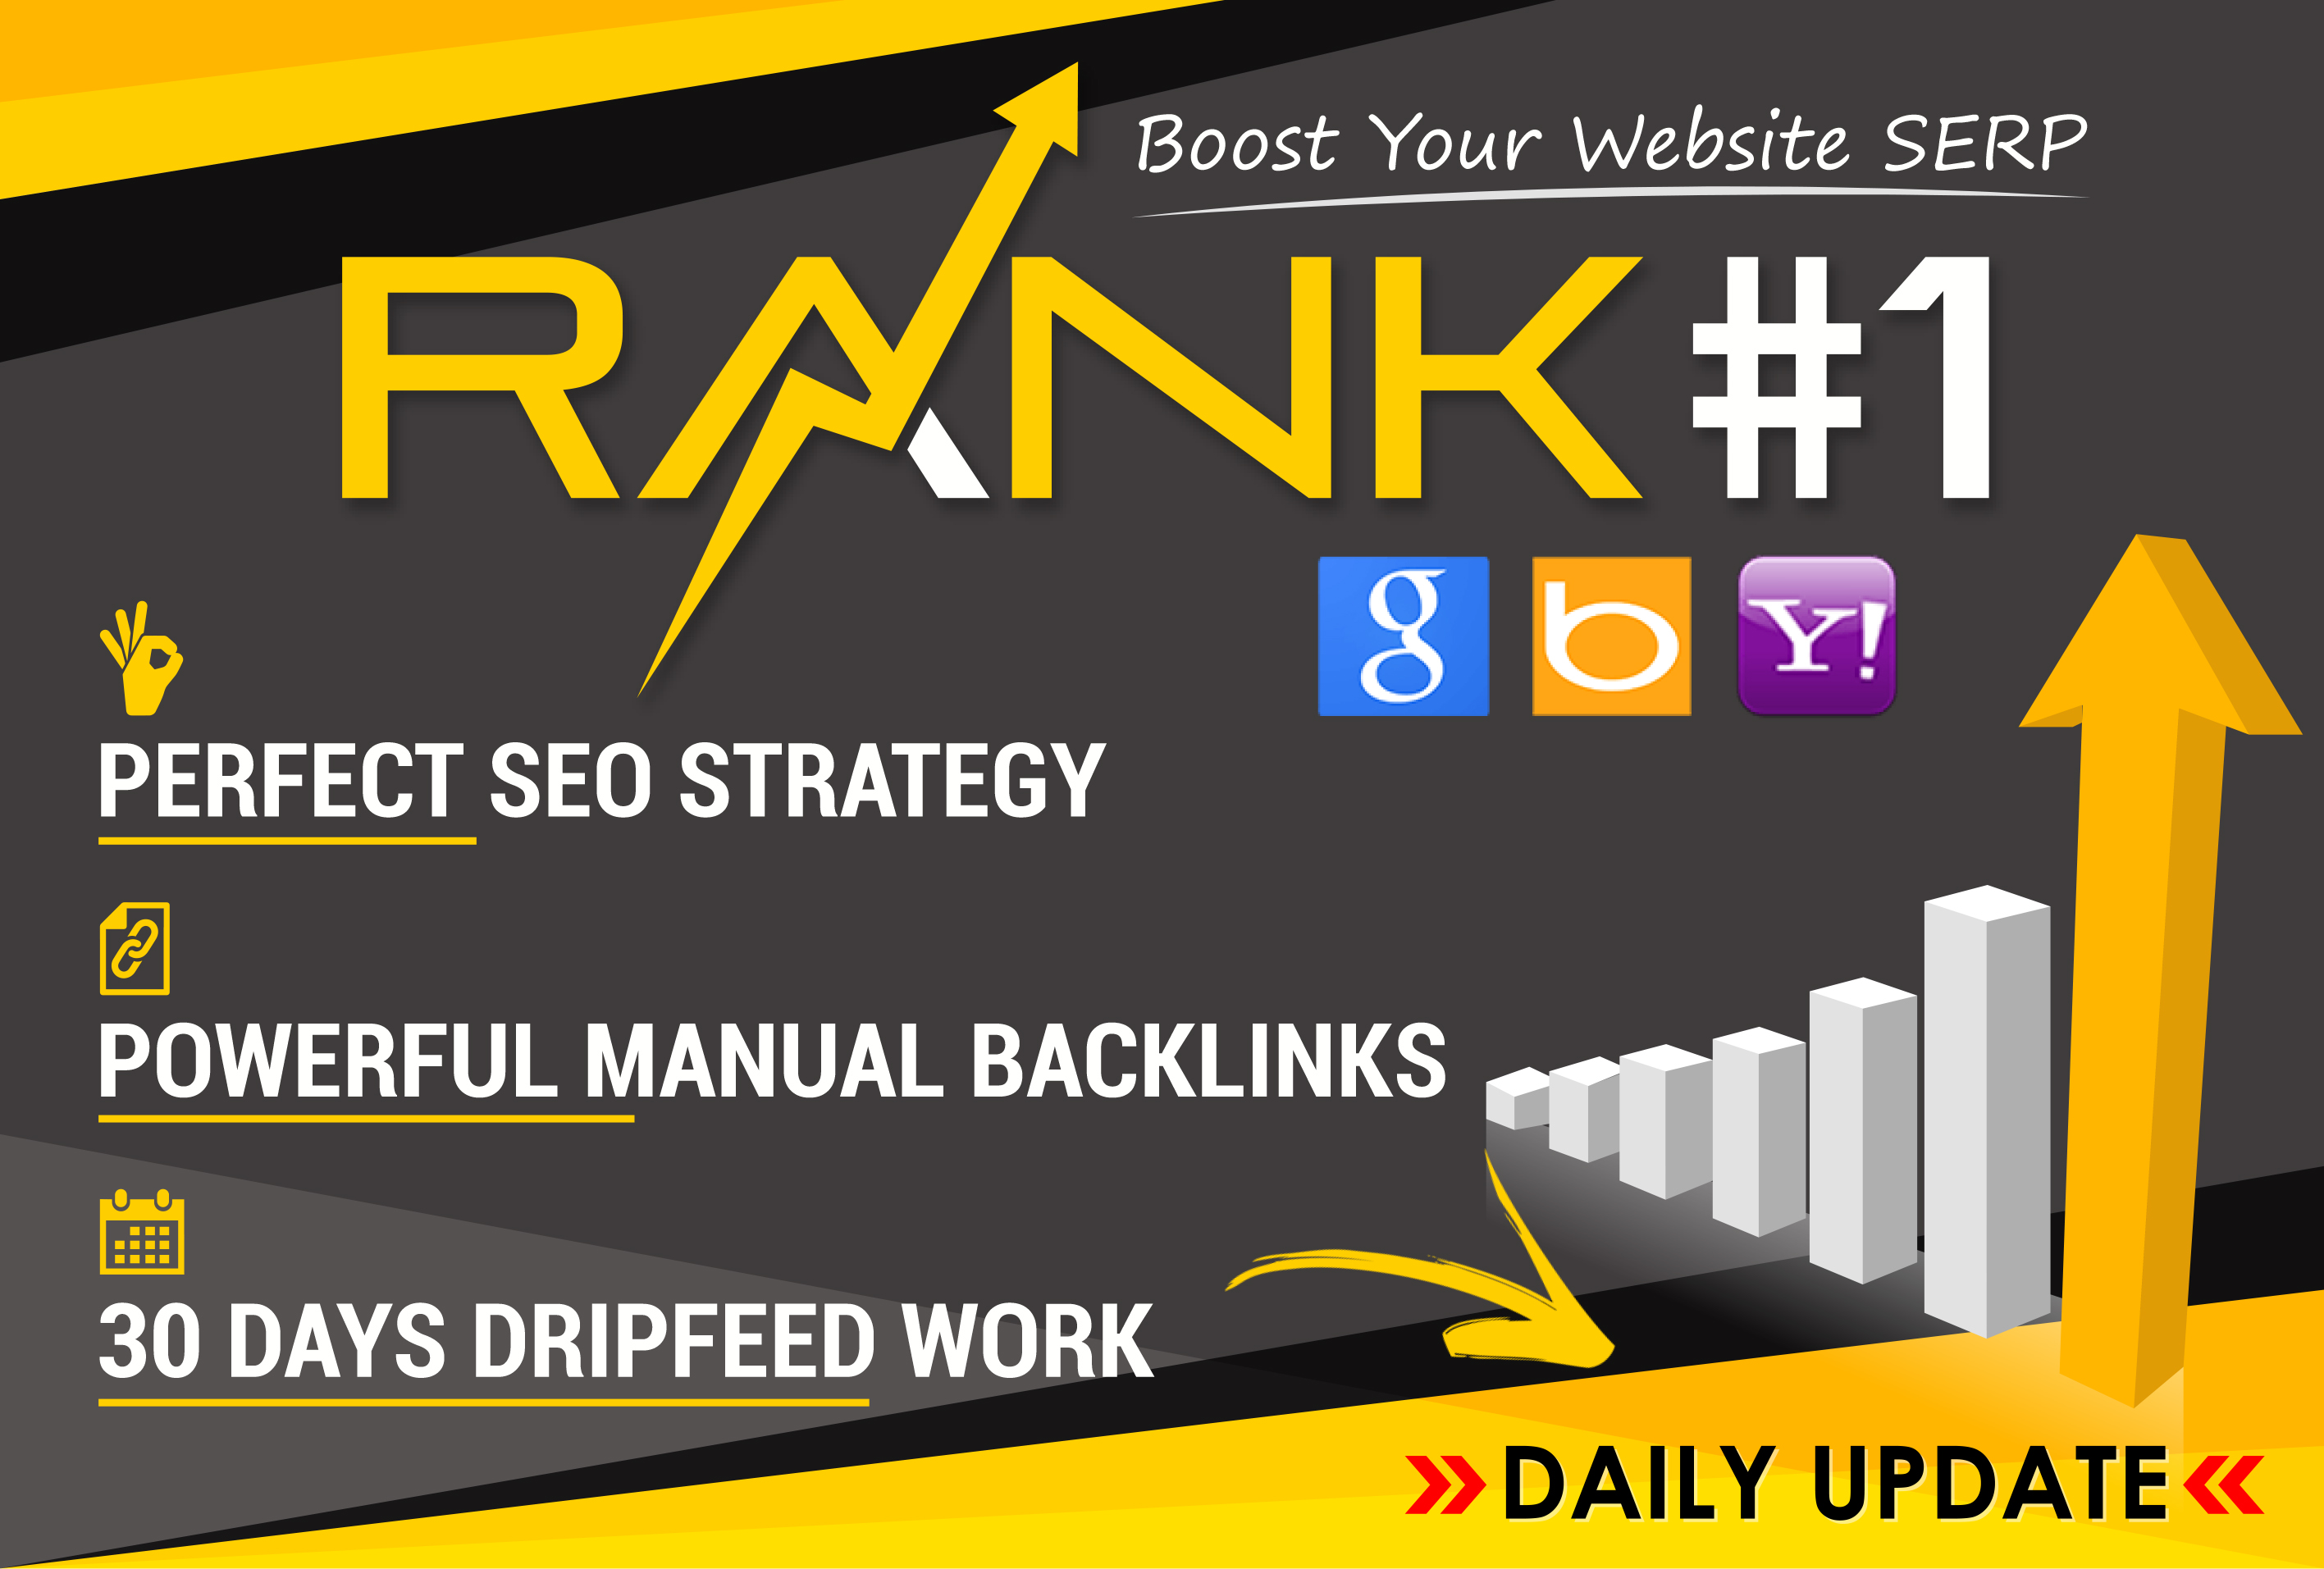 TOP Google Rankings PBN With My All-In-One High PR Quality High Backlinking Package - Rank Increase